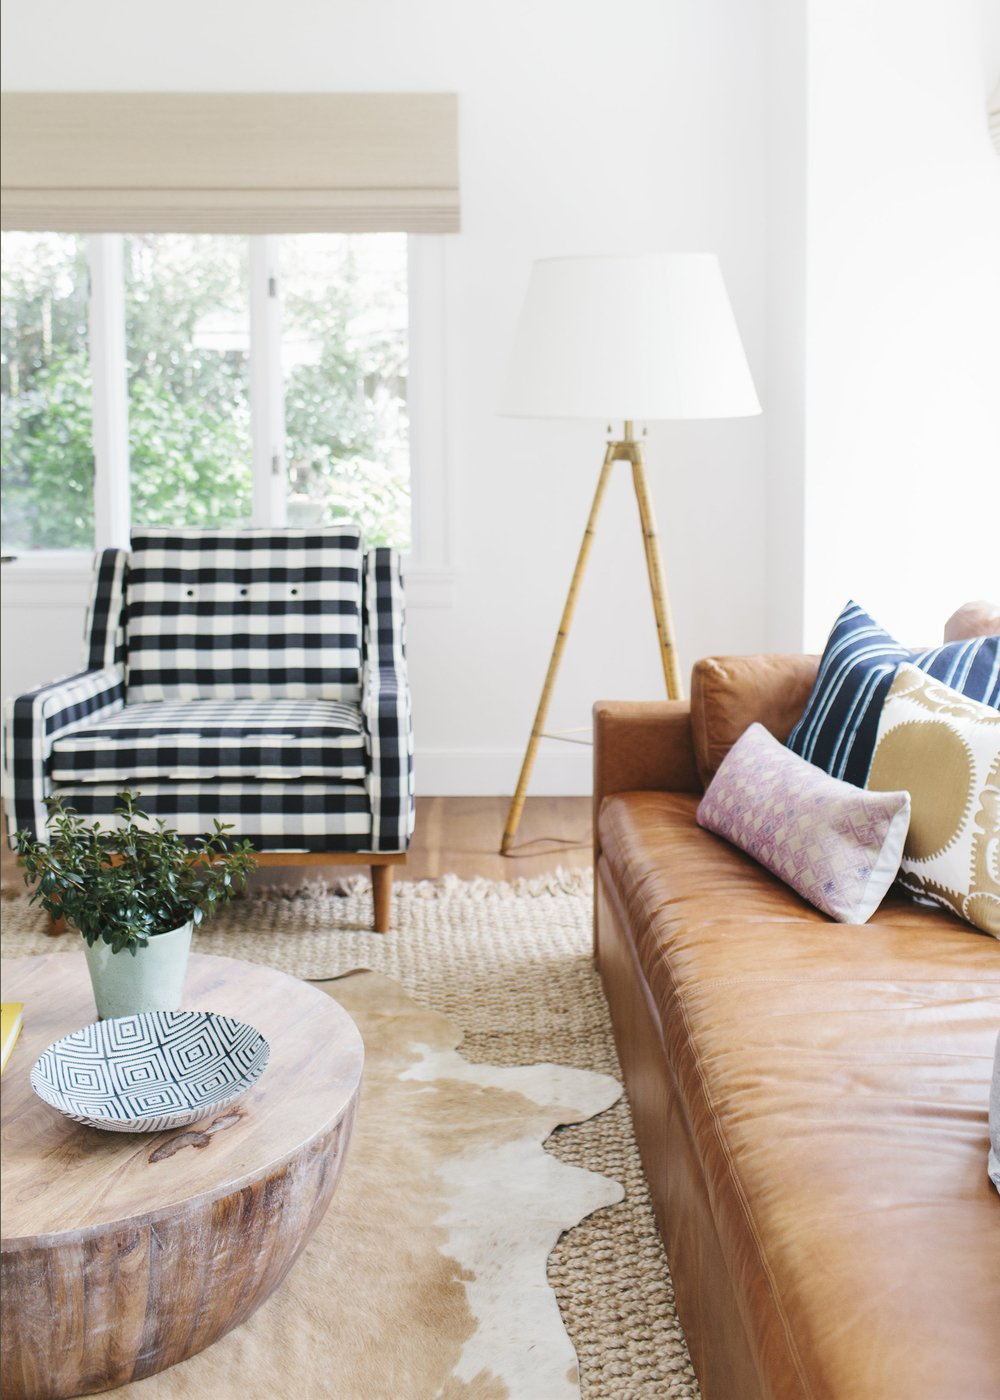 Secrets For Making Plaid Look Modern All Year Round Apartment Therapy